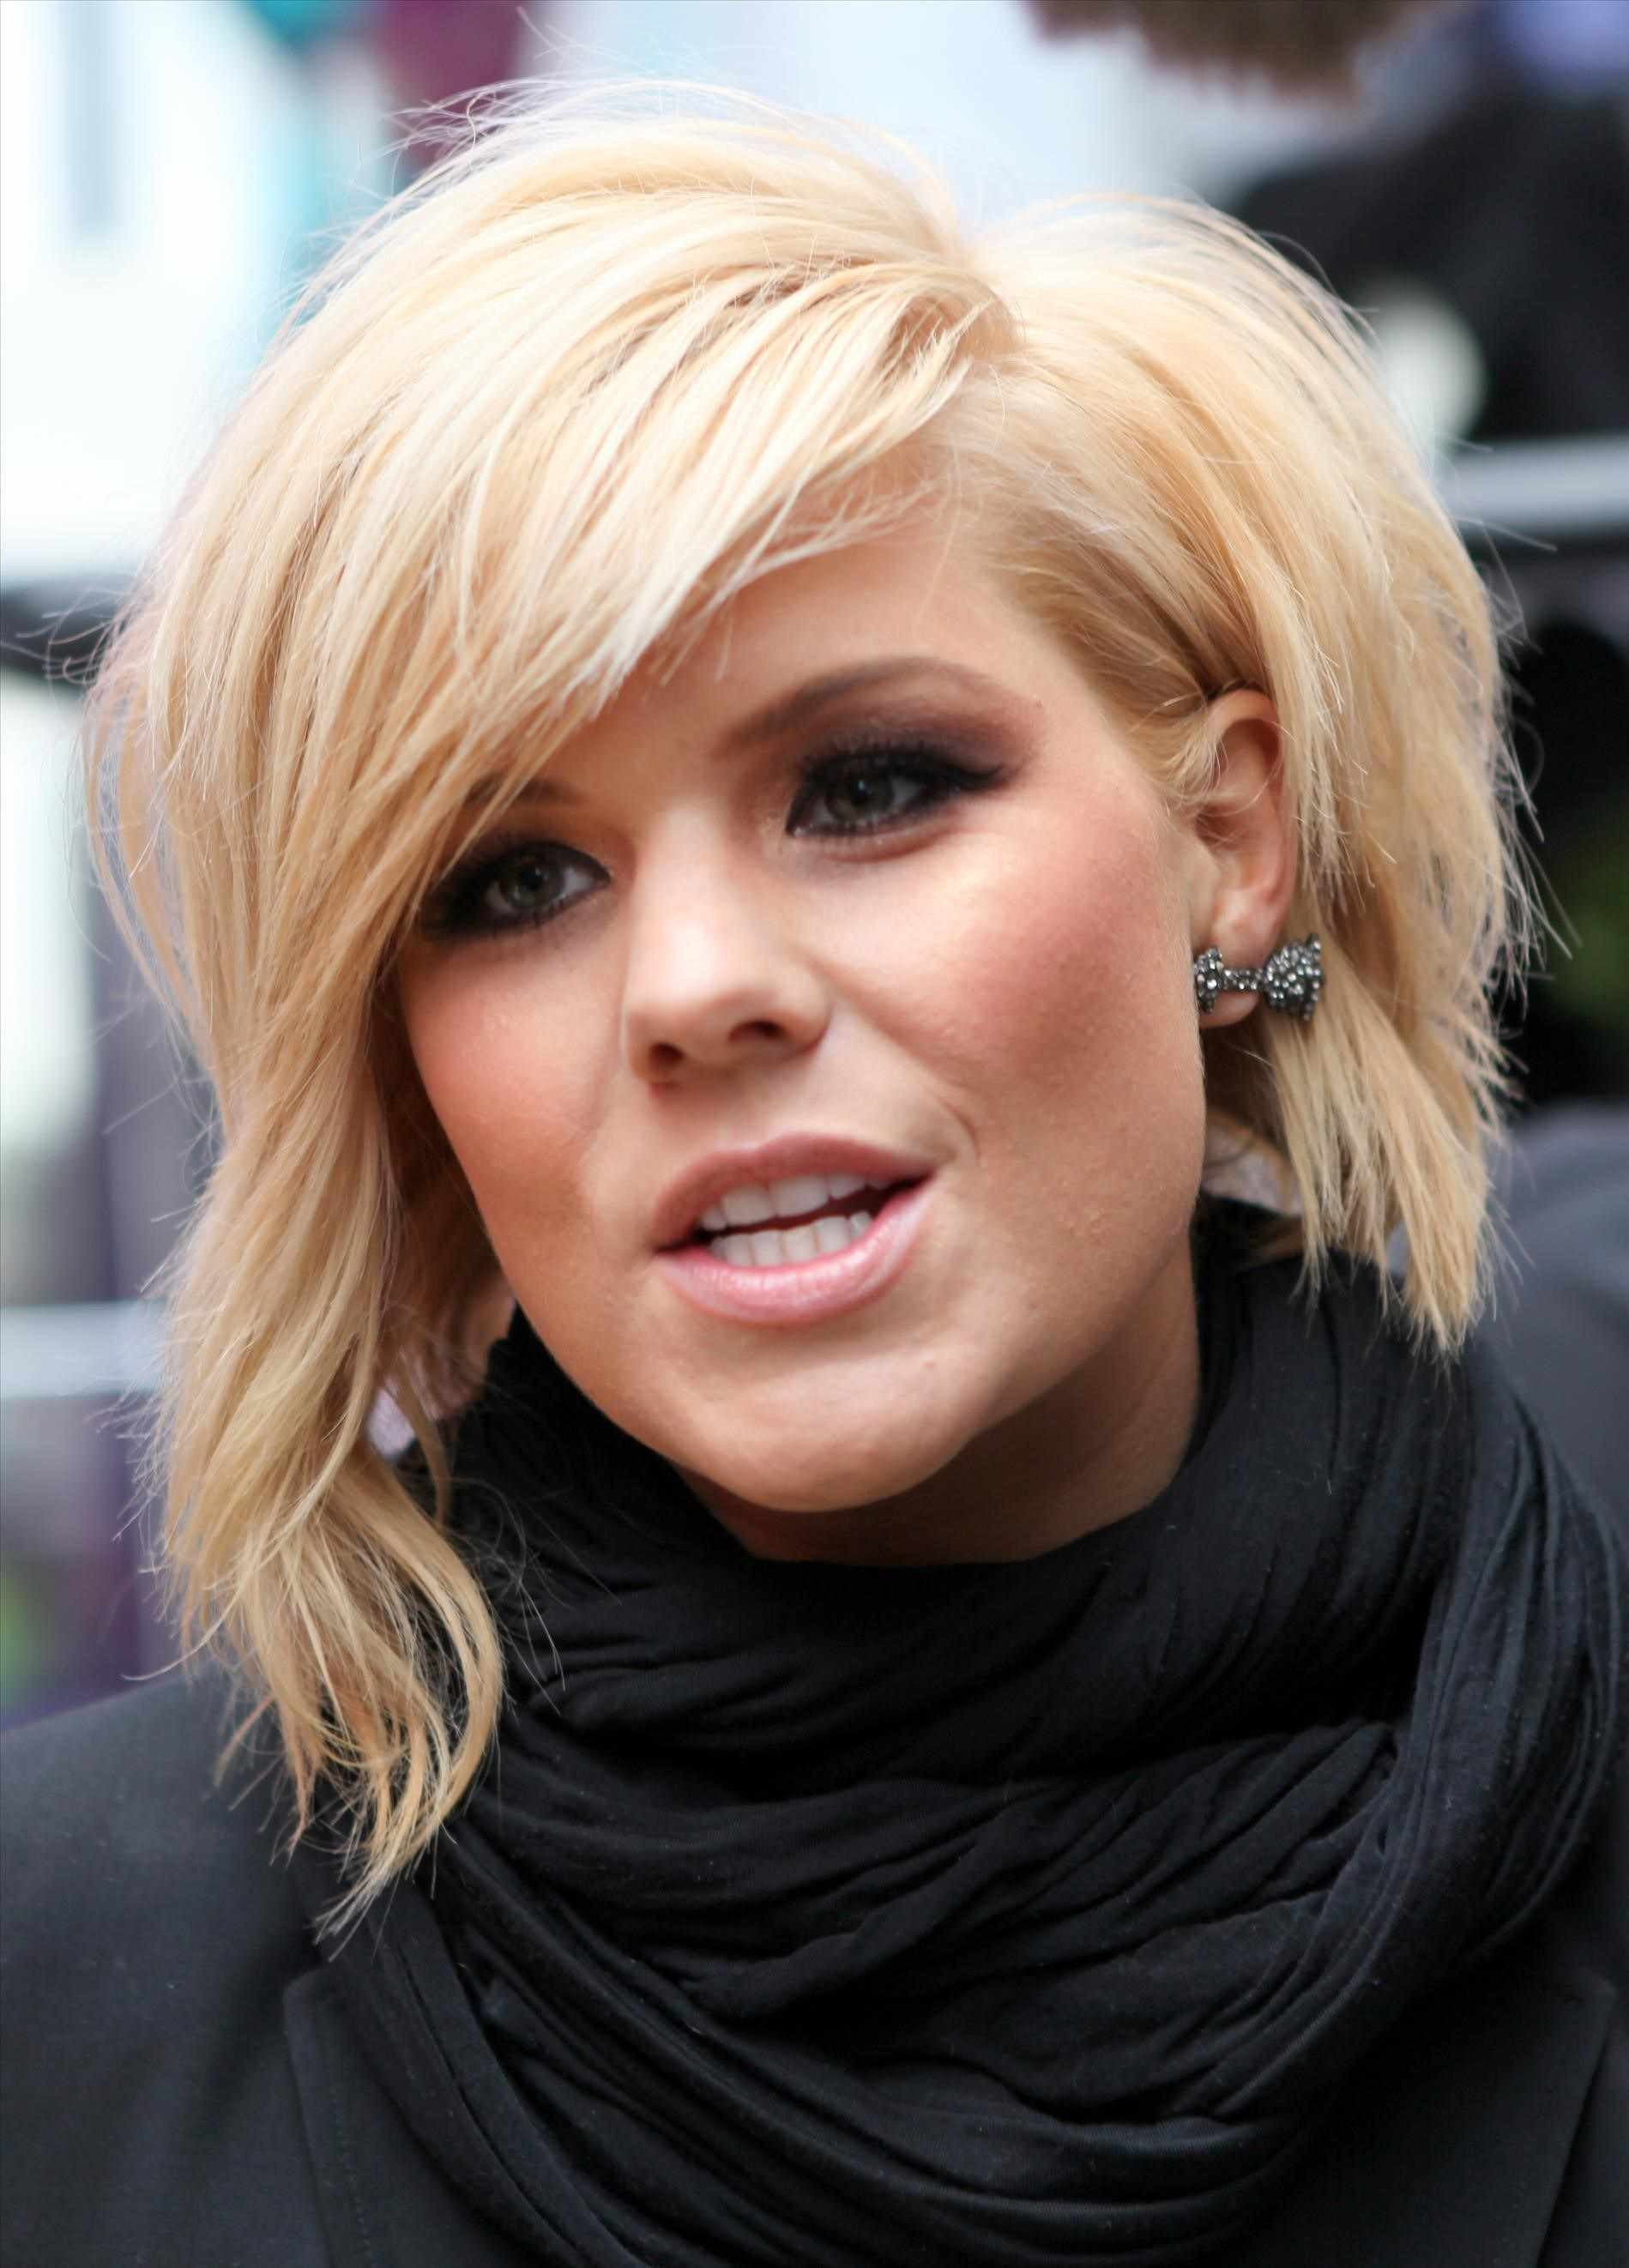 The Best 30 Most Attractive Looking Face Framing Hairstyles For Pictures